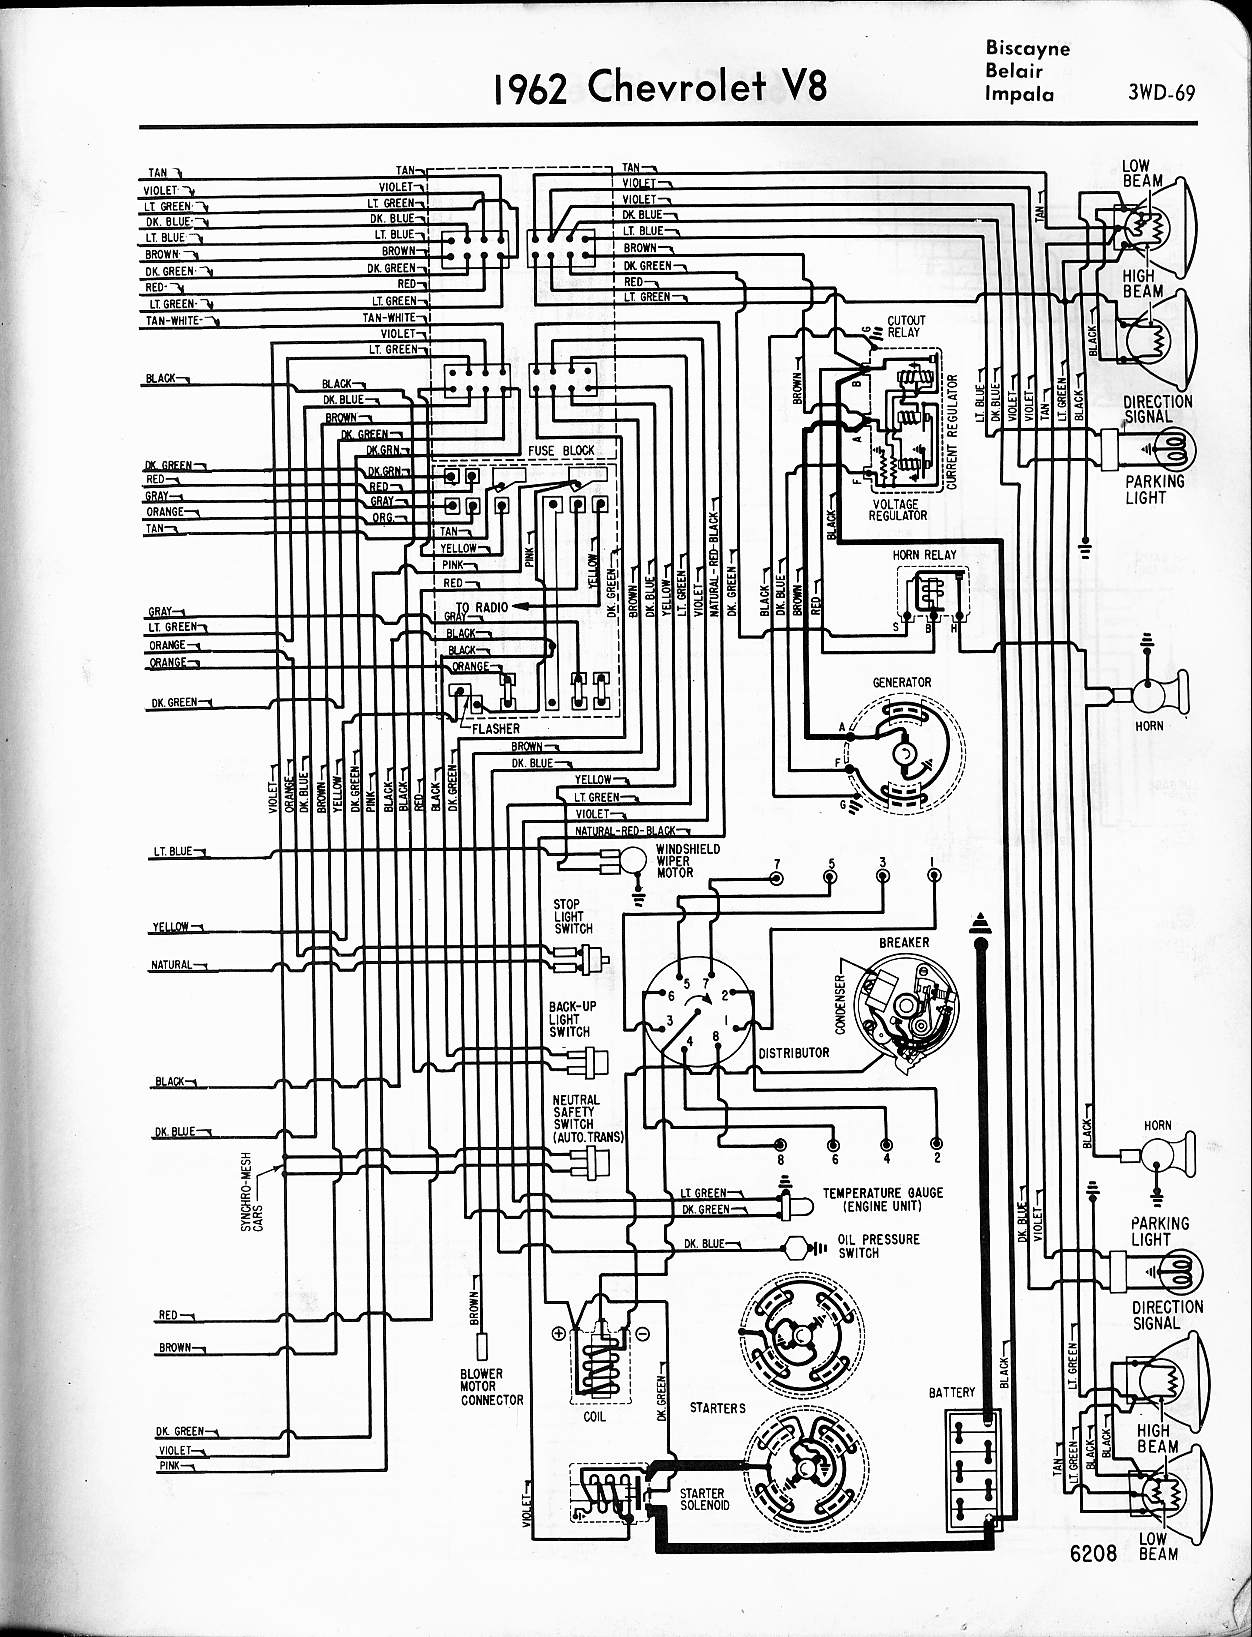 1971 Chevelle Wiring Diagram Pdf from wholefoodsonabudget.com